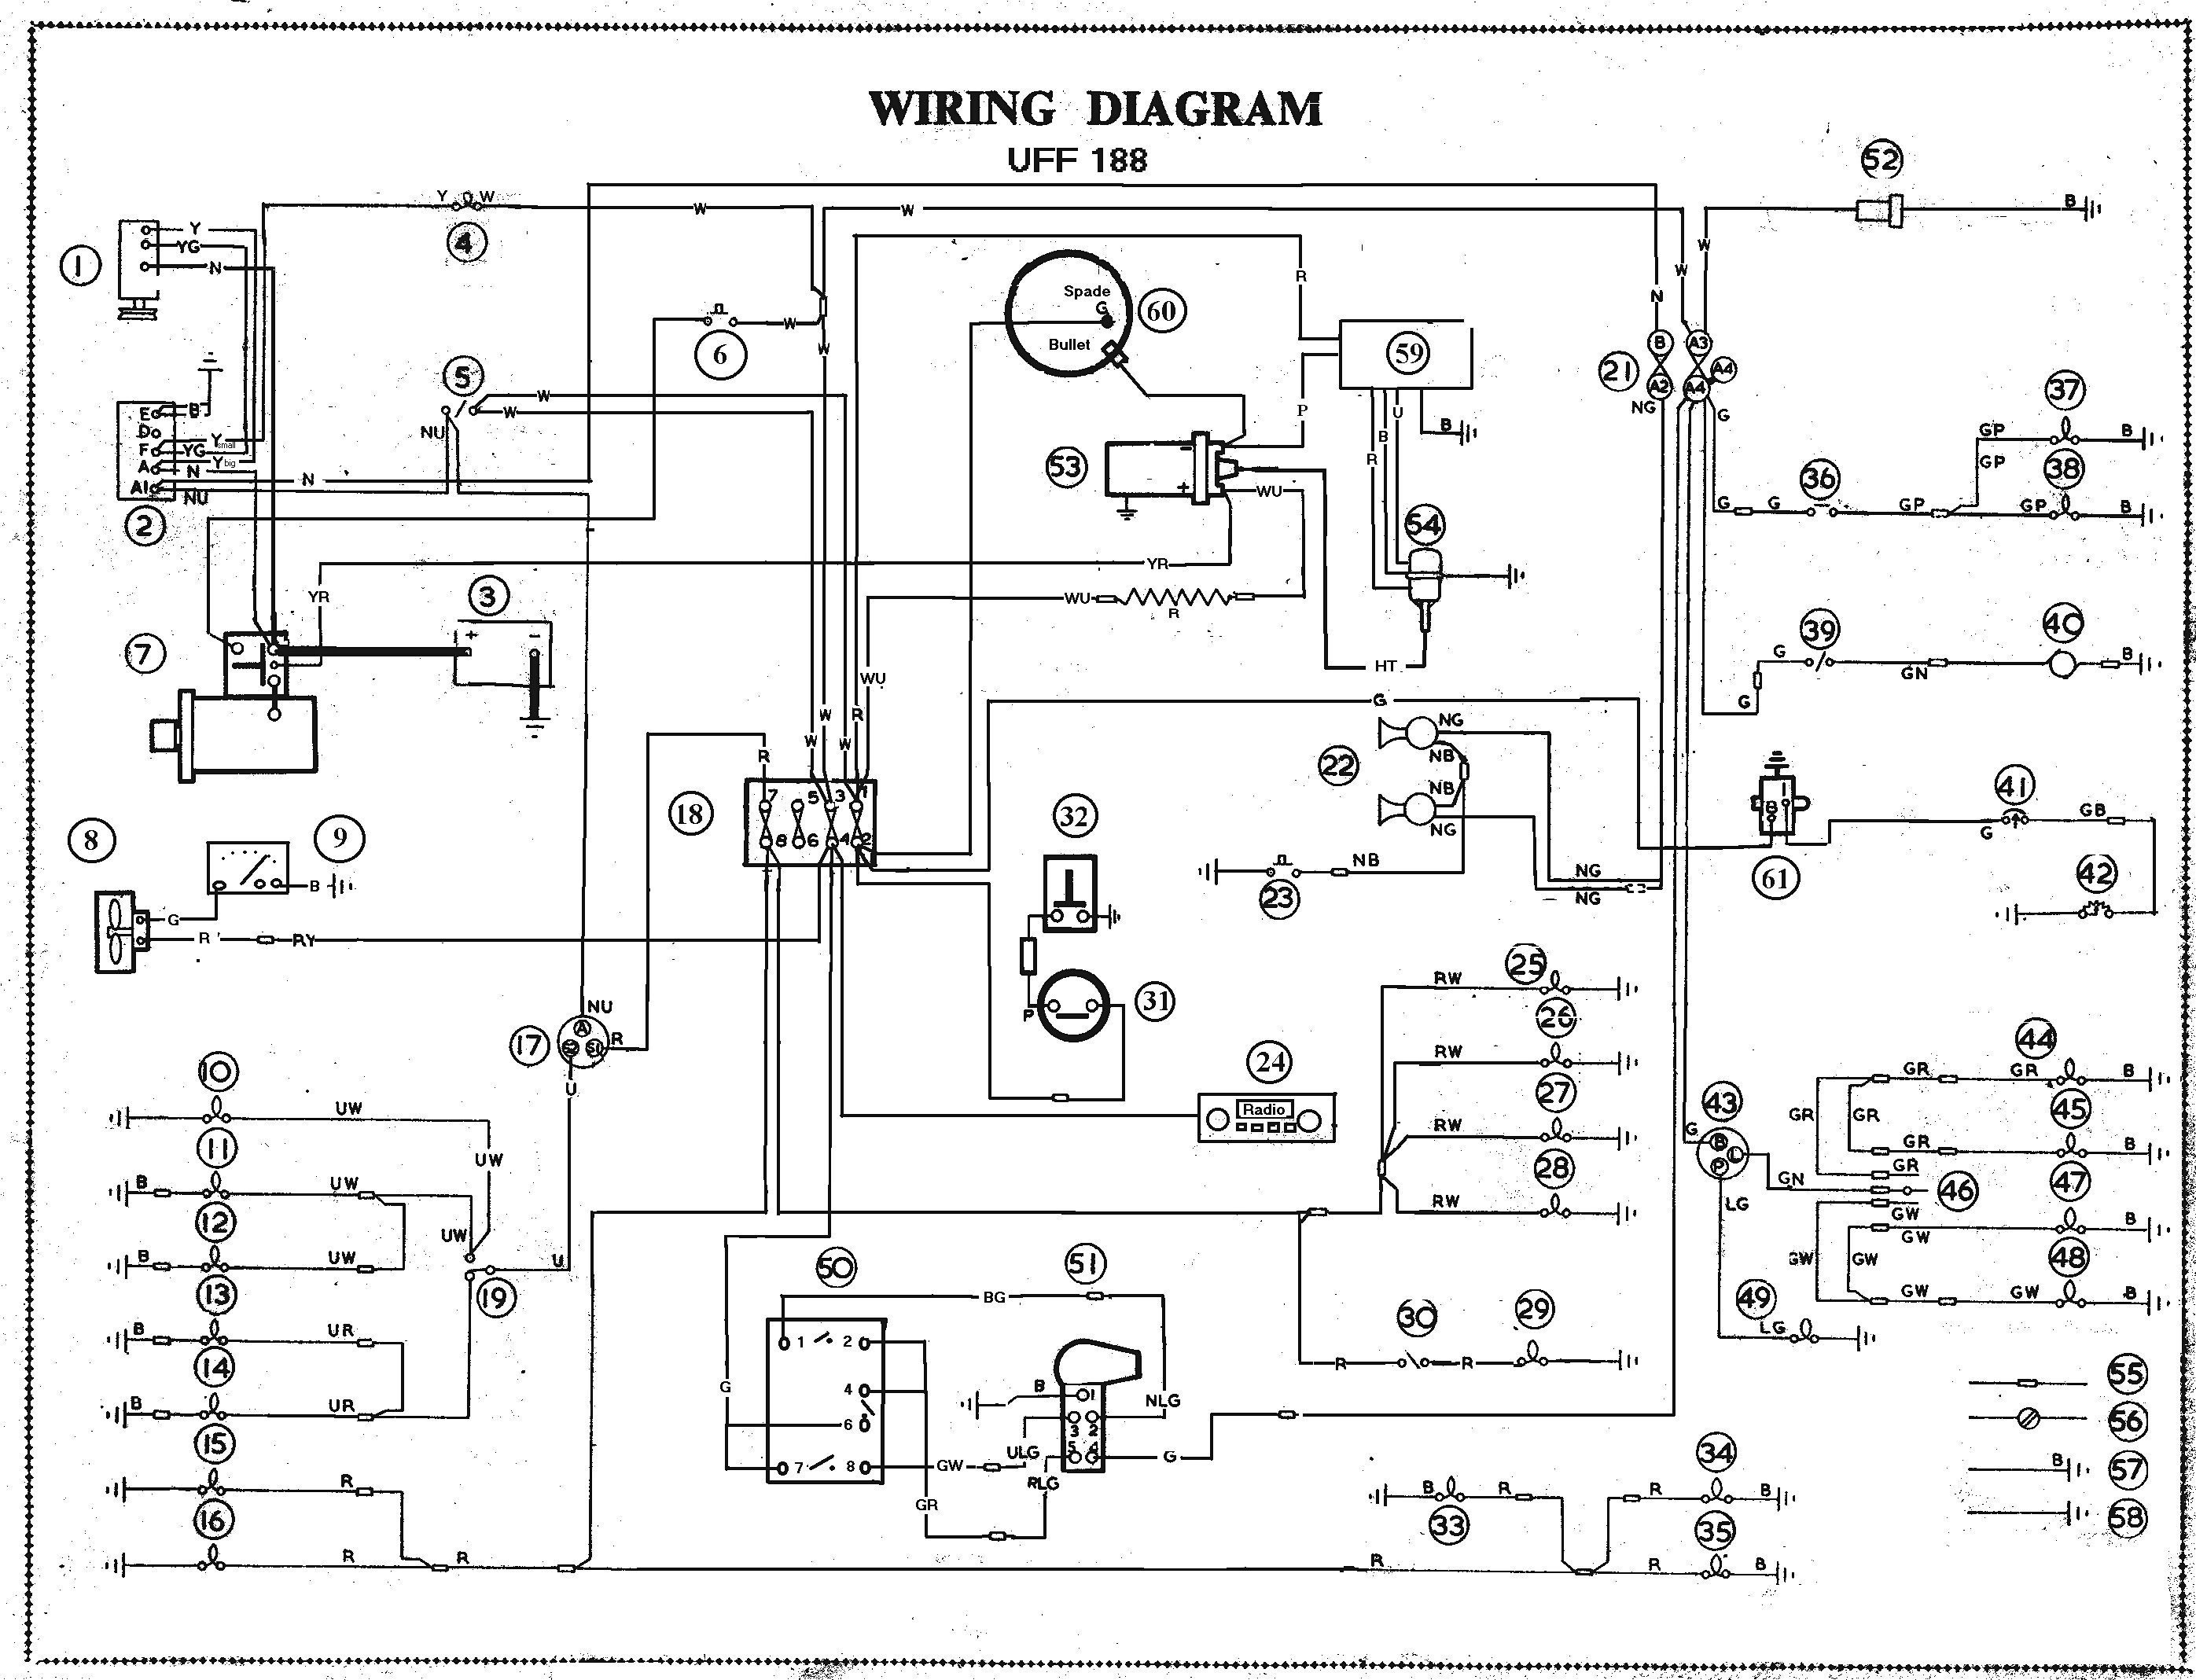 Audi A5 Starter Wiring Diagram - Wiring Diagram All arch-about -  arch-about.huevoprint.it | Audi A5 Wiring Diagram |  | Huevoprint